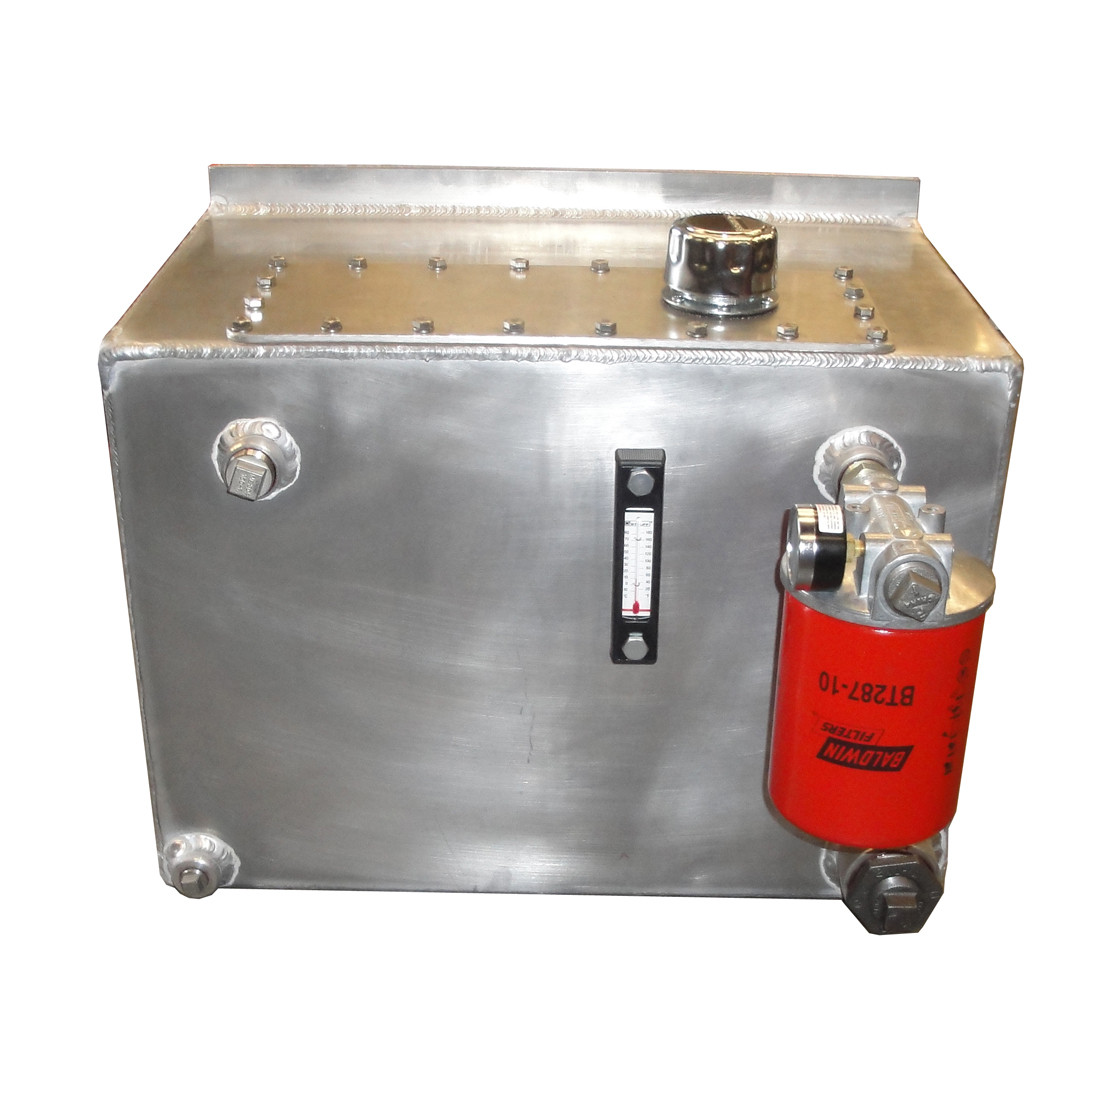 InMac-Kolstrand Aluminum Hydraulic Oil Reservoir-20 Gallon Capacity with  Shut-off Valve, Drain Valve, Oil Level & Temperature Gauge, Return Line